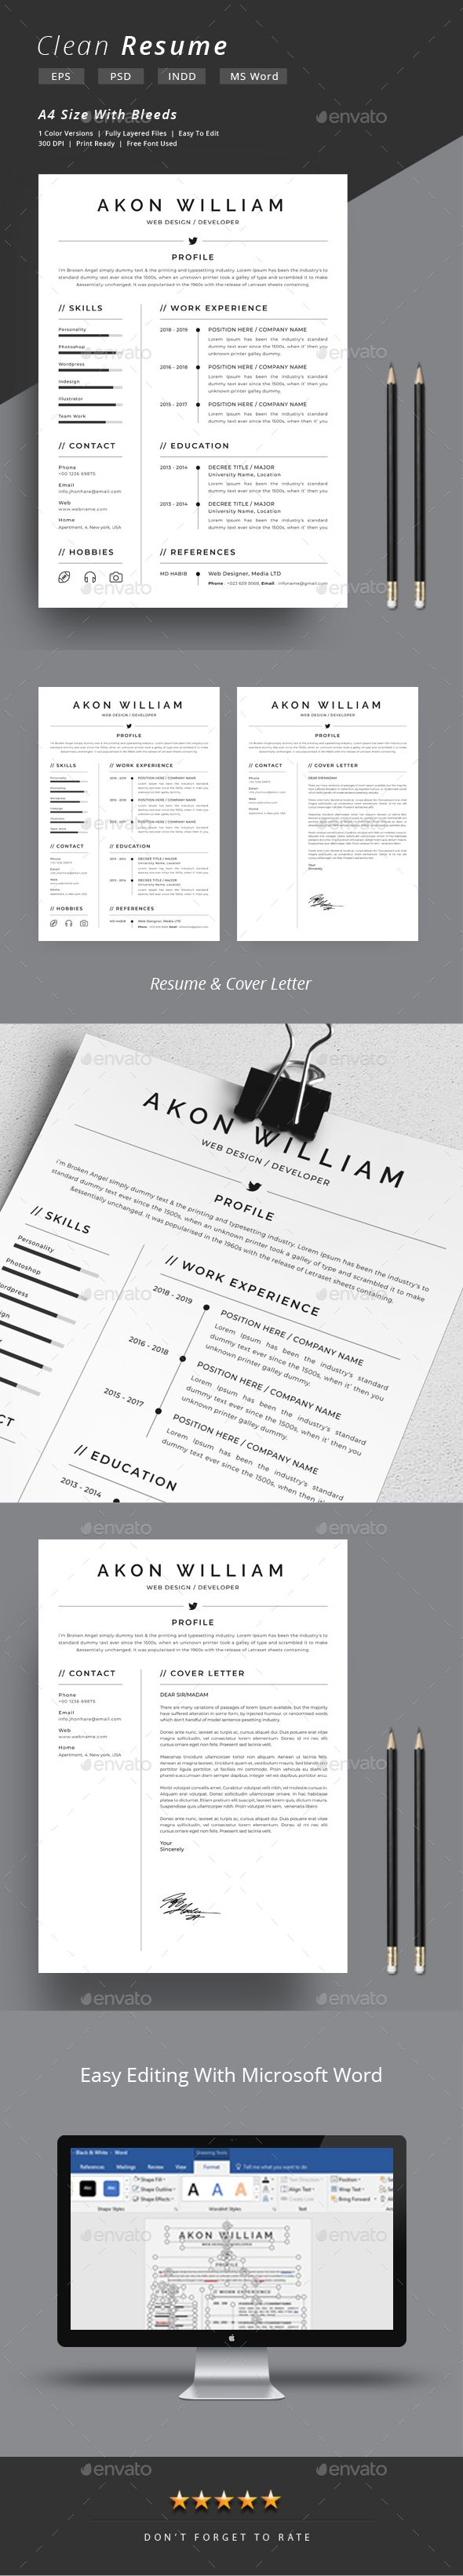 Resume 180 best Resume Templates images on